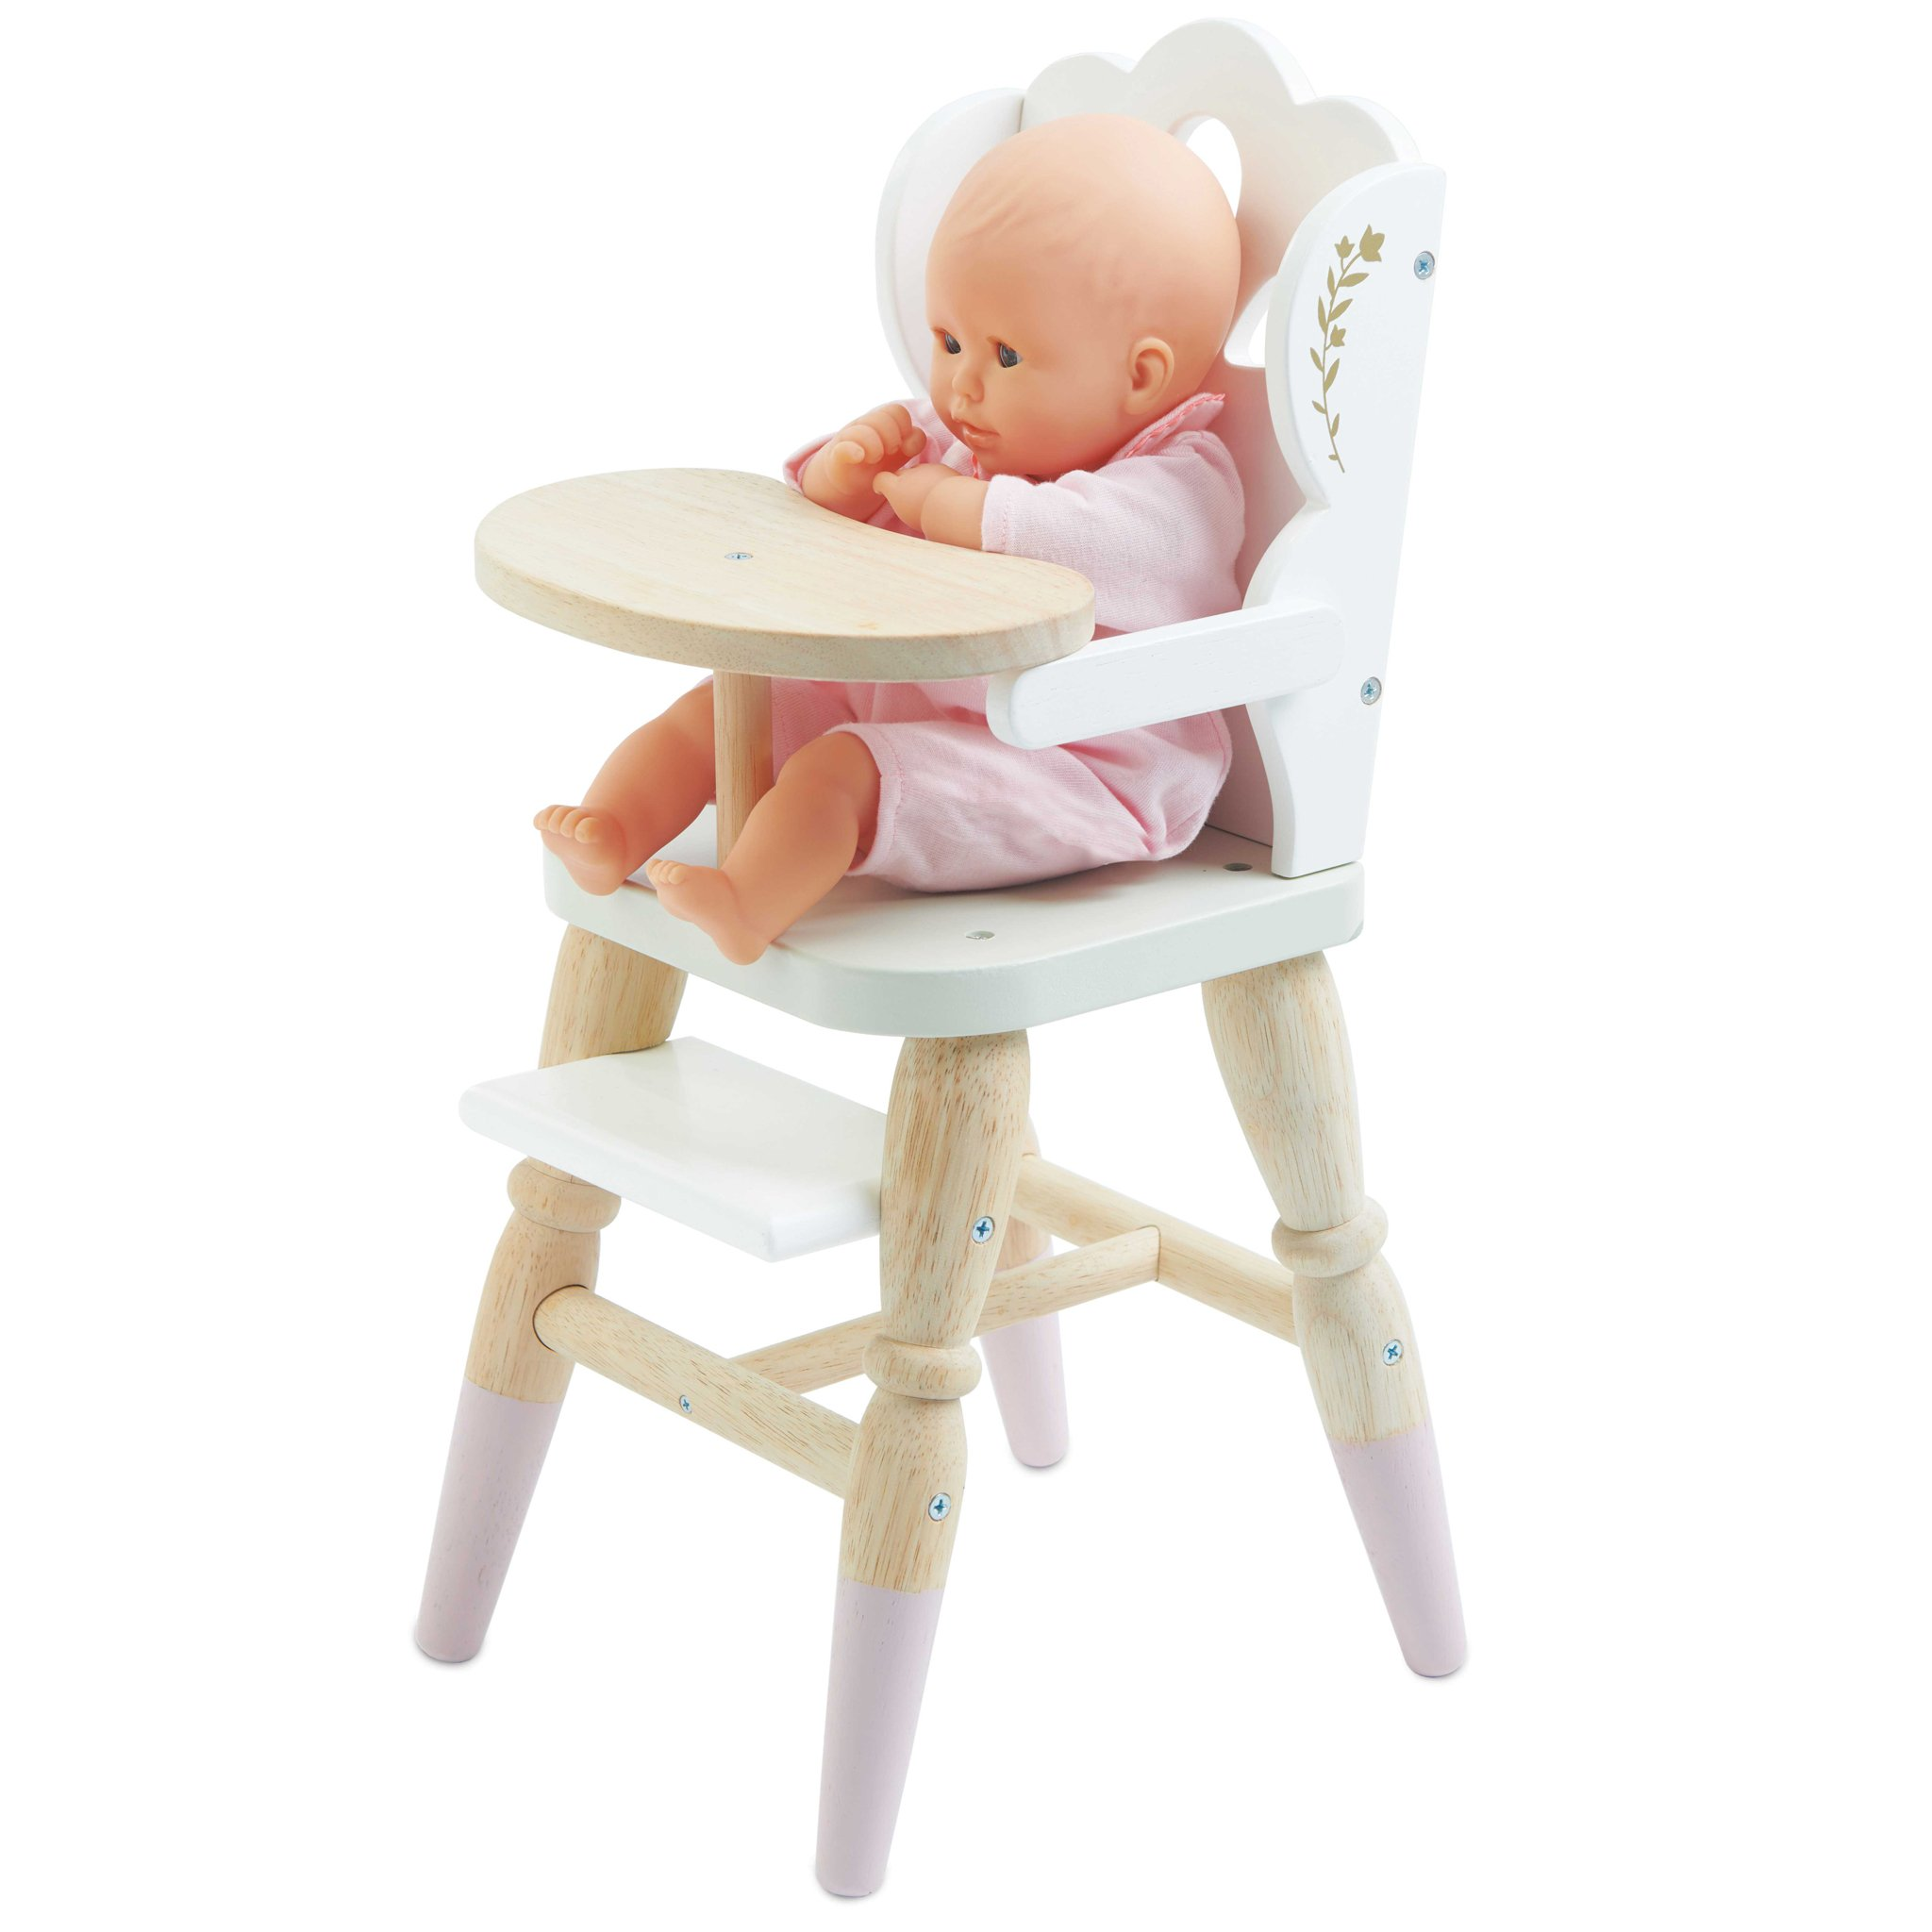 Le Toy Van Doll High Chair Smart Kid Store